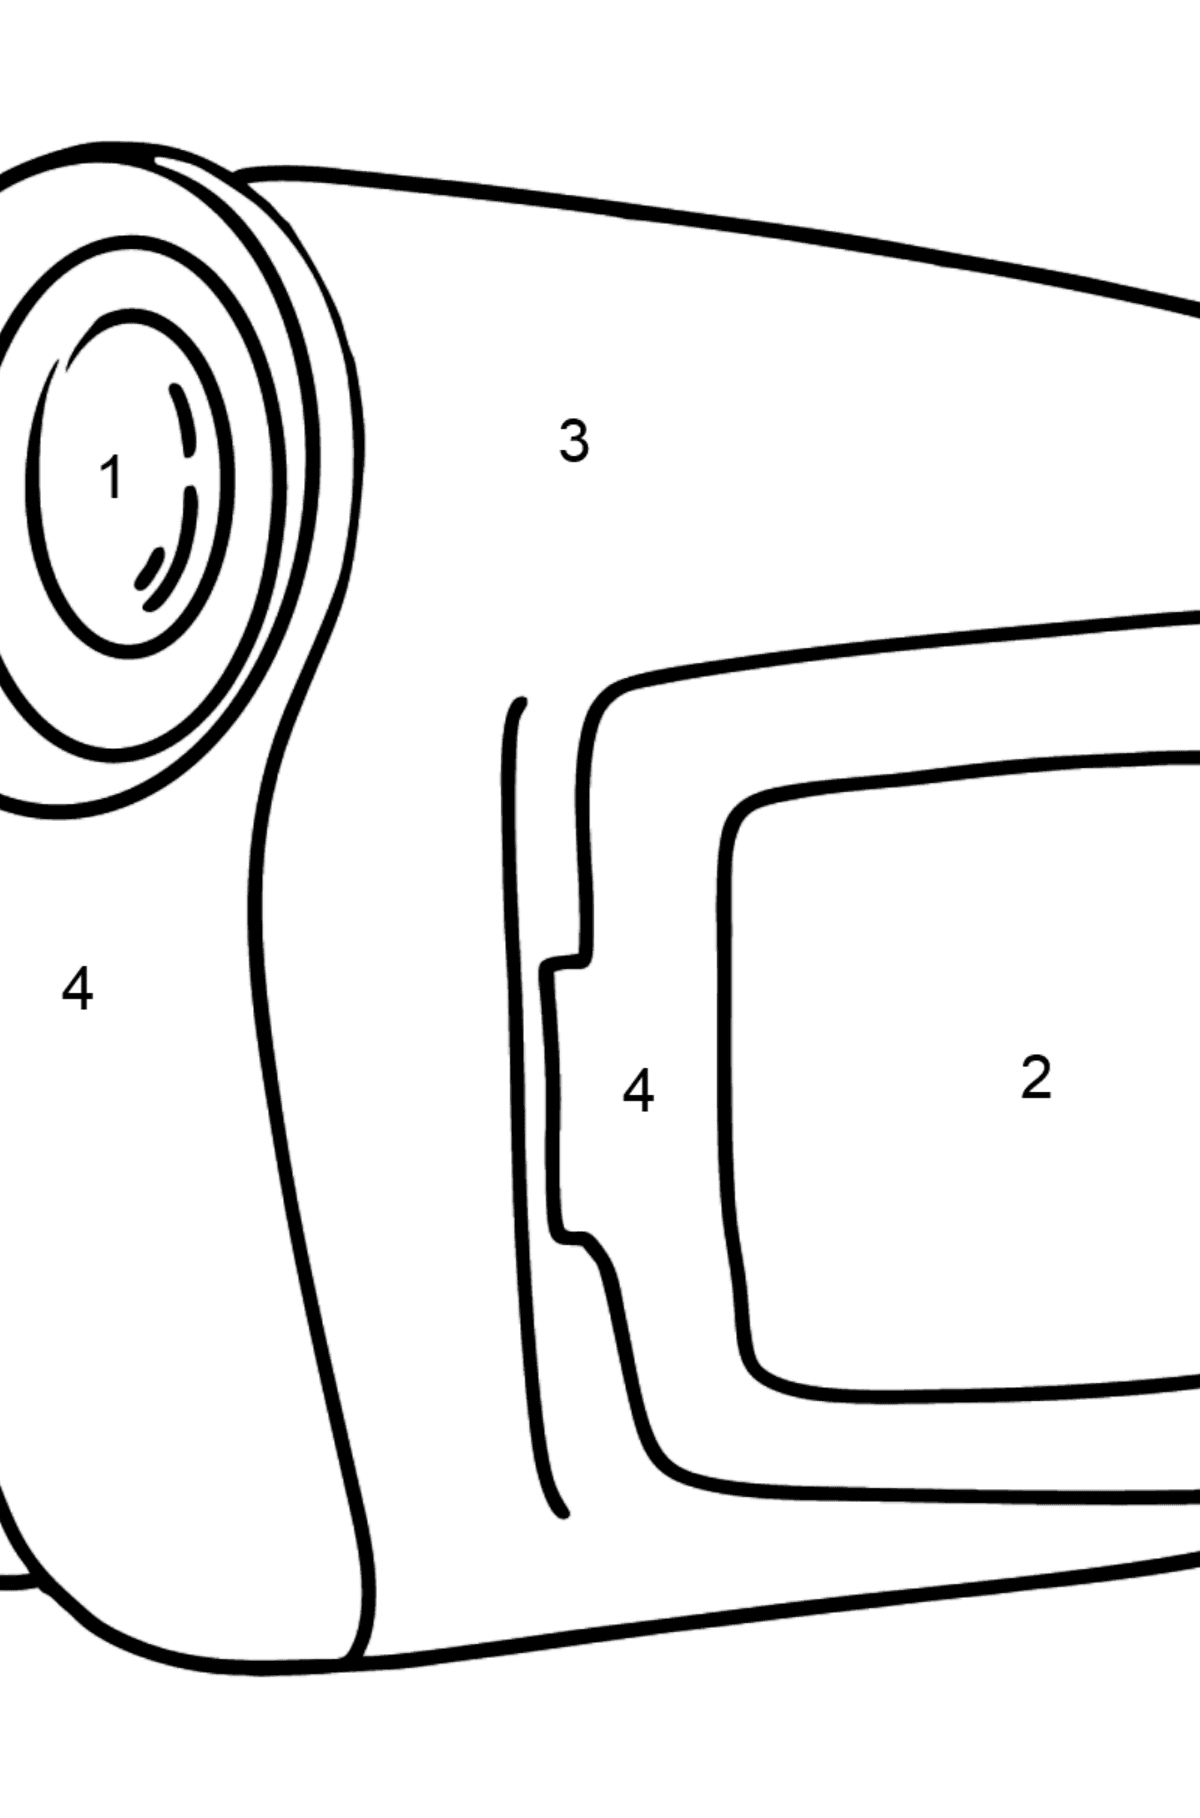 Video camera coloring page - Coloring by Numbers for Kids